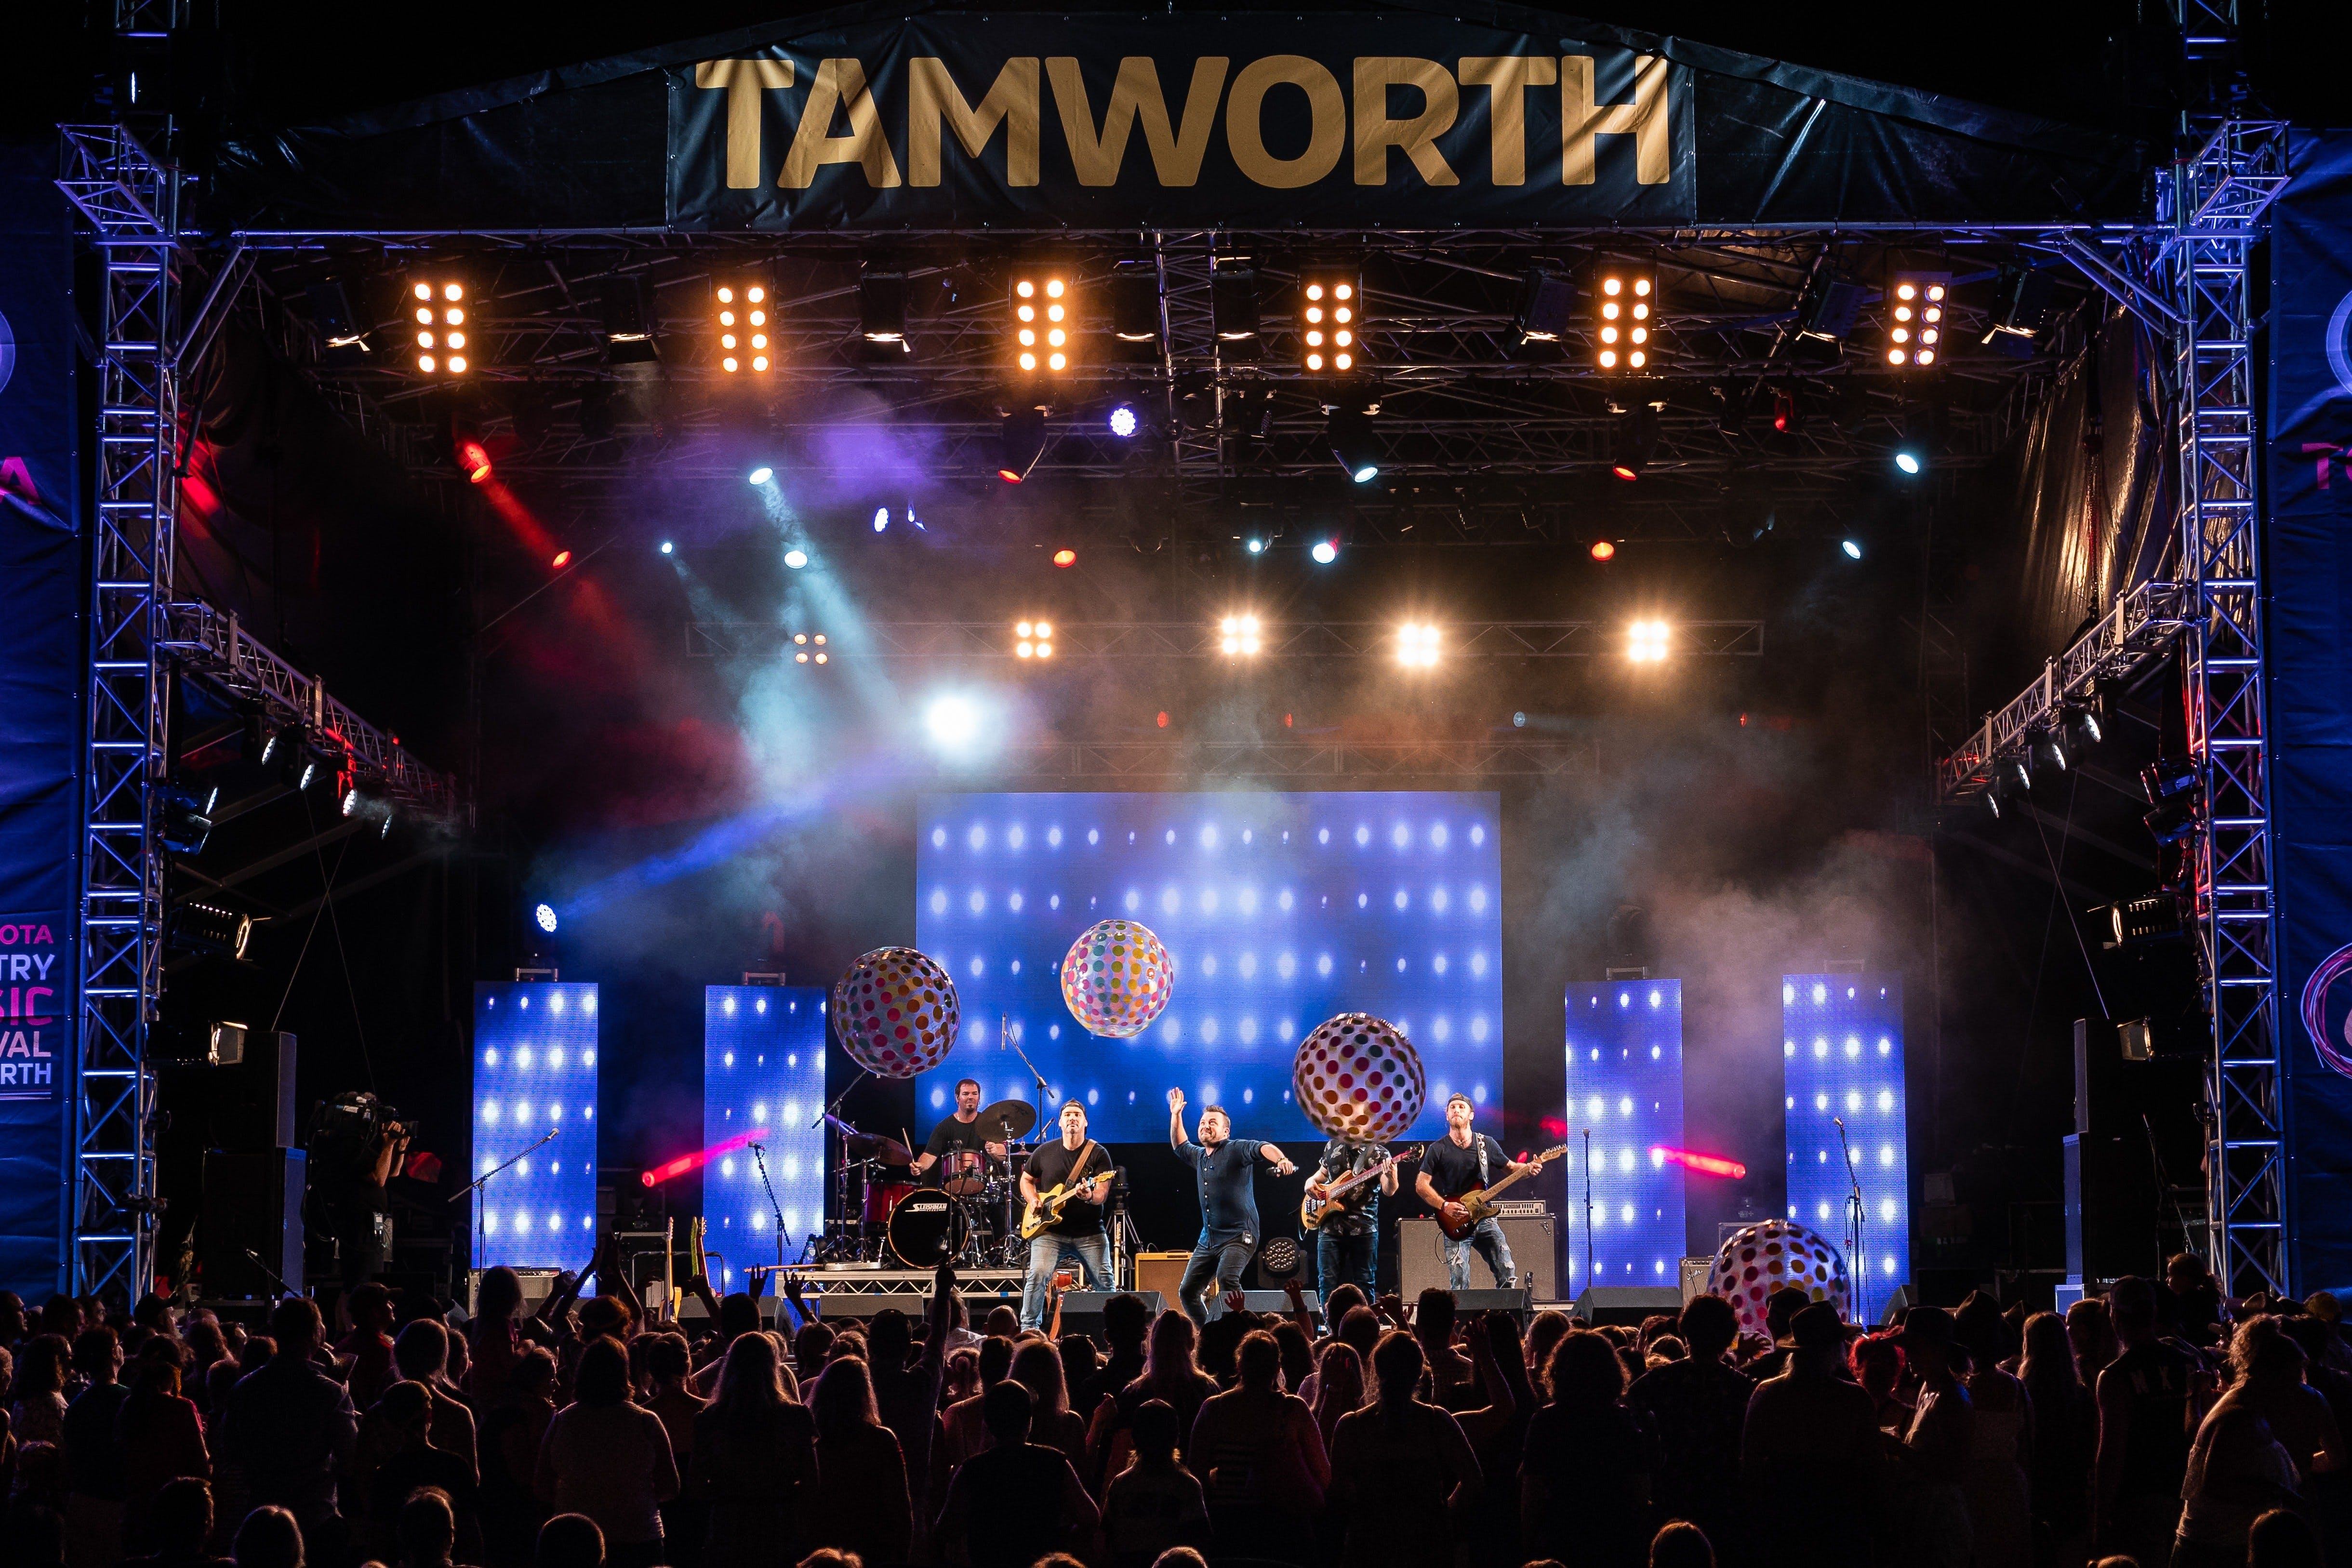 Toyota Country Music Festival Tamworth - Tourism Adelaide